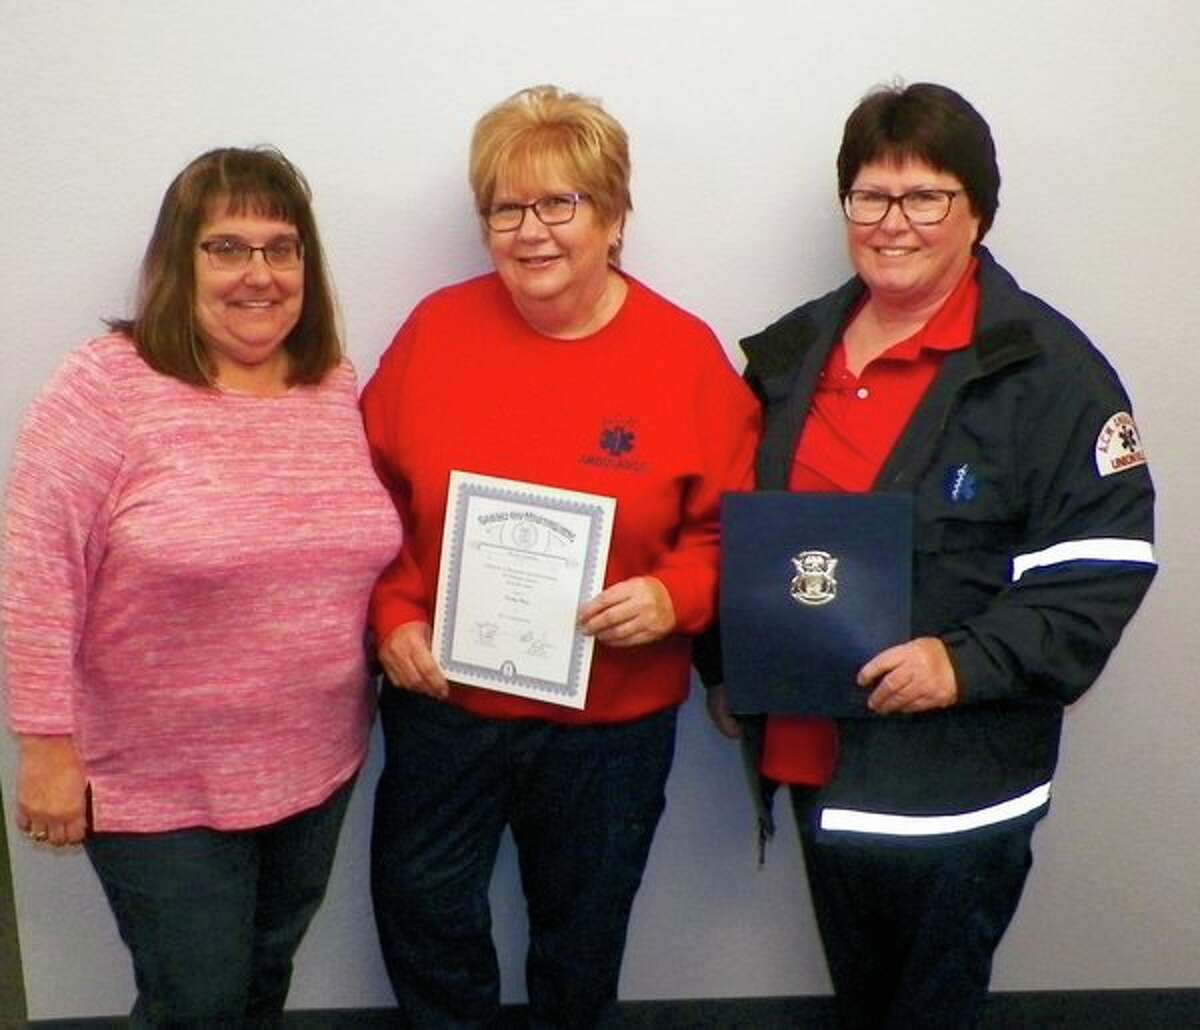 Two ACW Ambulance service members received state recognition for 30 years of service. Showing the certificatesare Wisner Township Clerk Pamela Shook, who is chair of the ACW Ambulance Board, and EMTs Kathy Hare and Alice Vermeersch. (Provided photo)